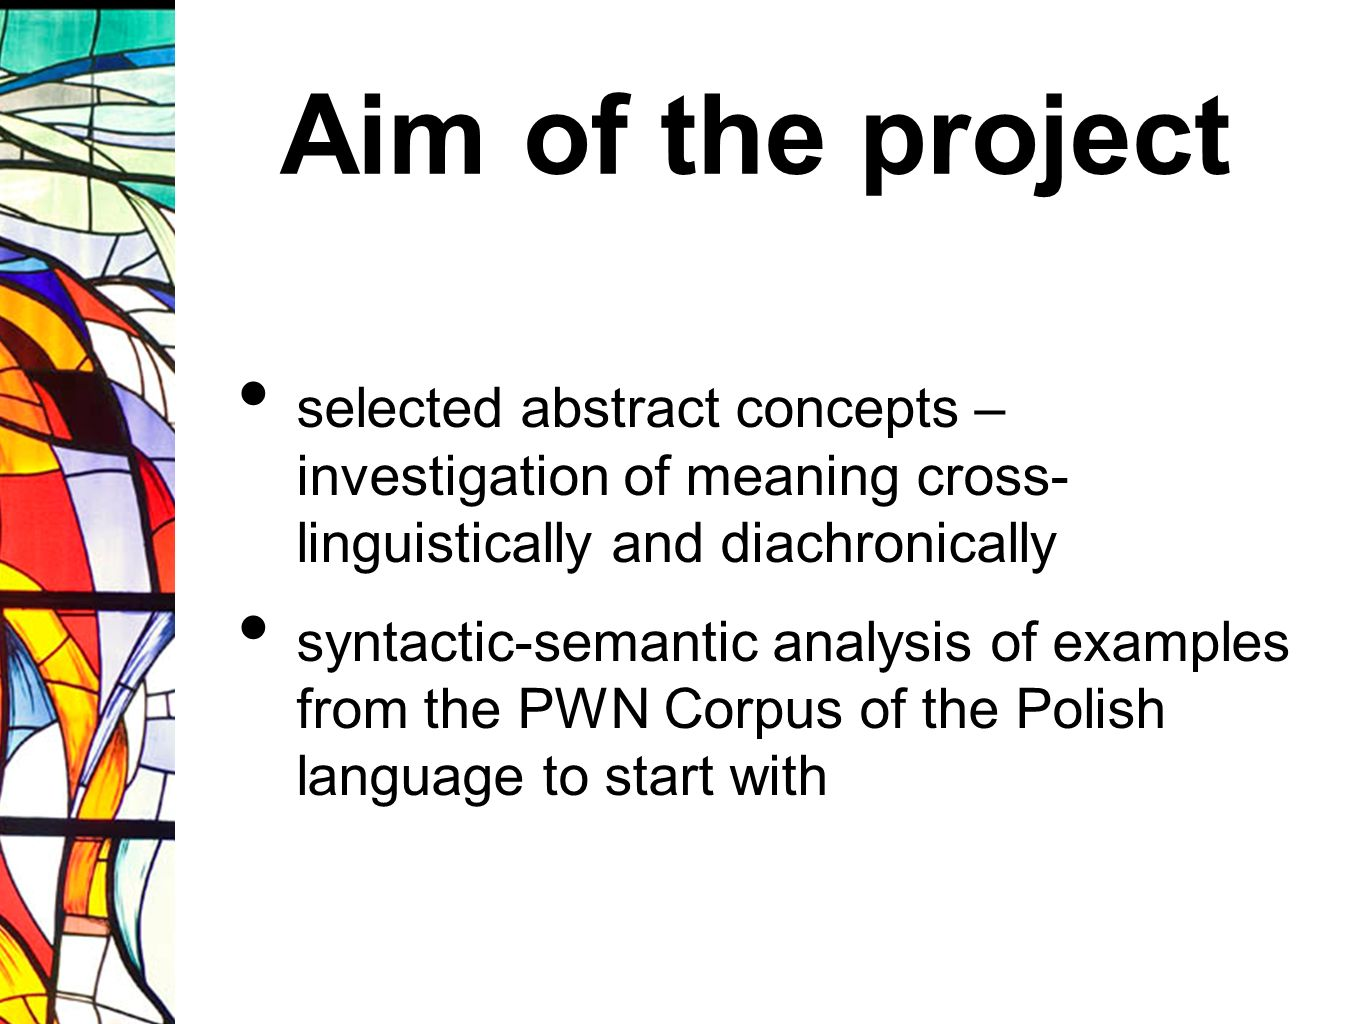 Aim of the project selected abstract concepts – investigation of meaning cross- linguistically and diachronically.